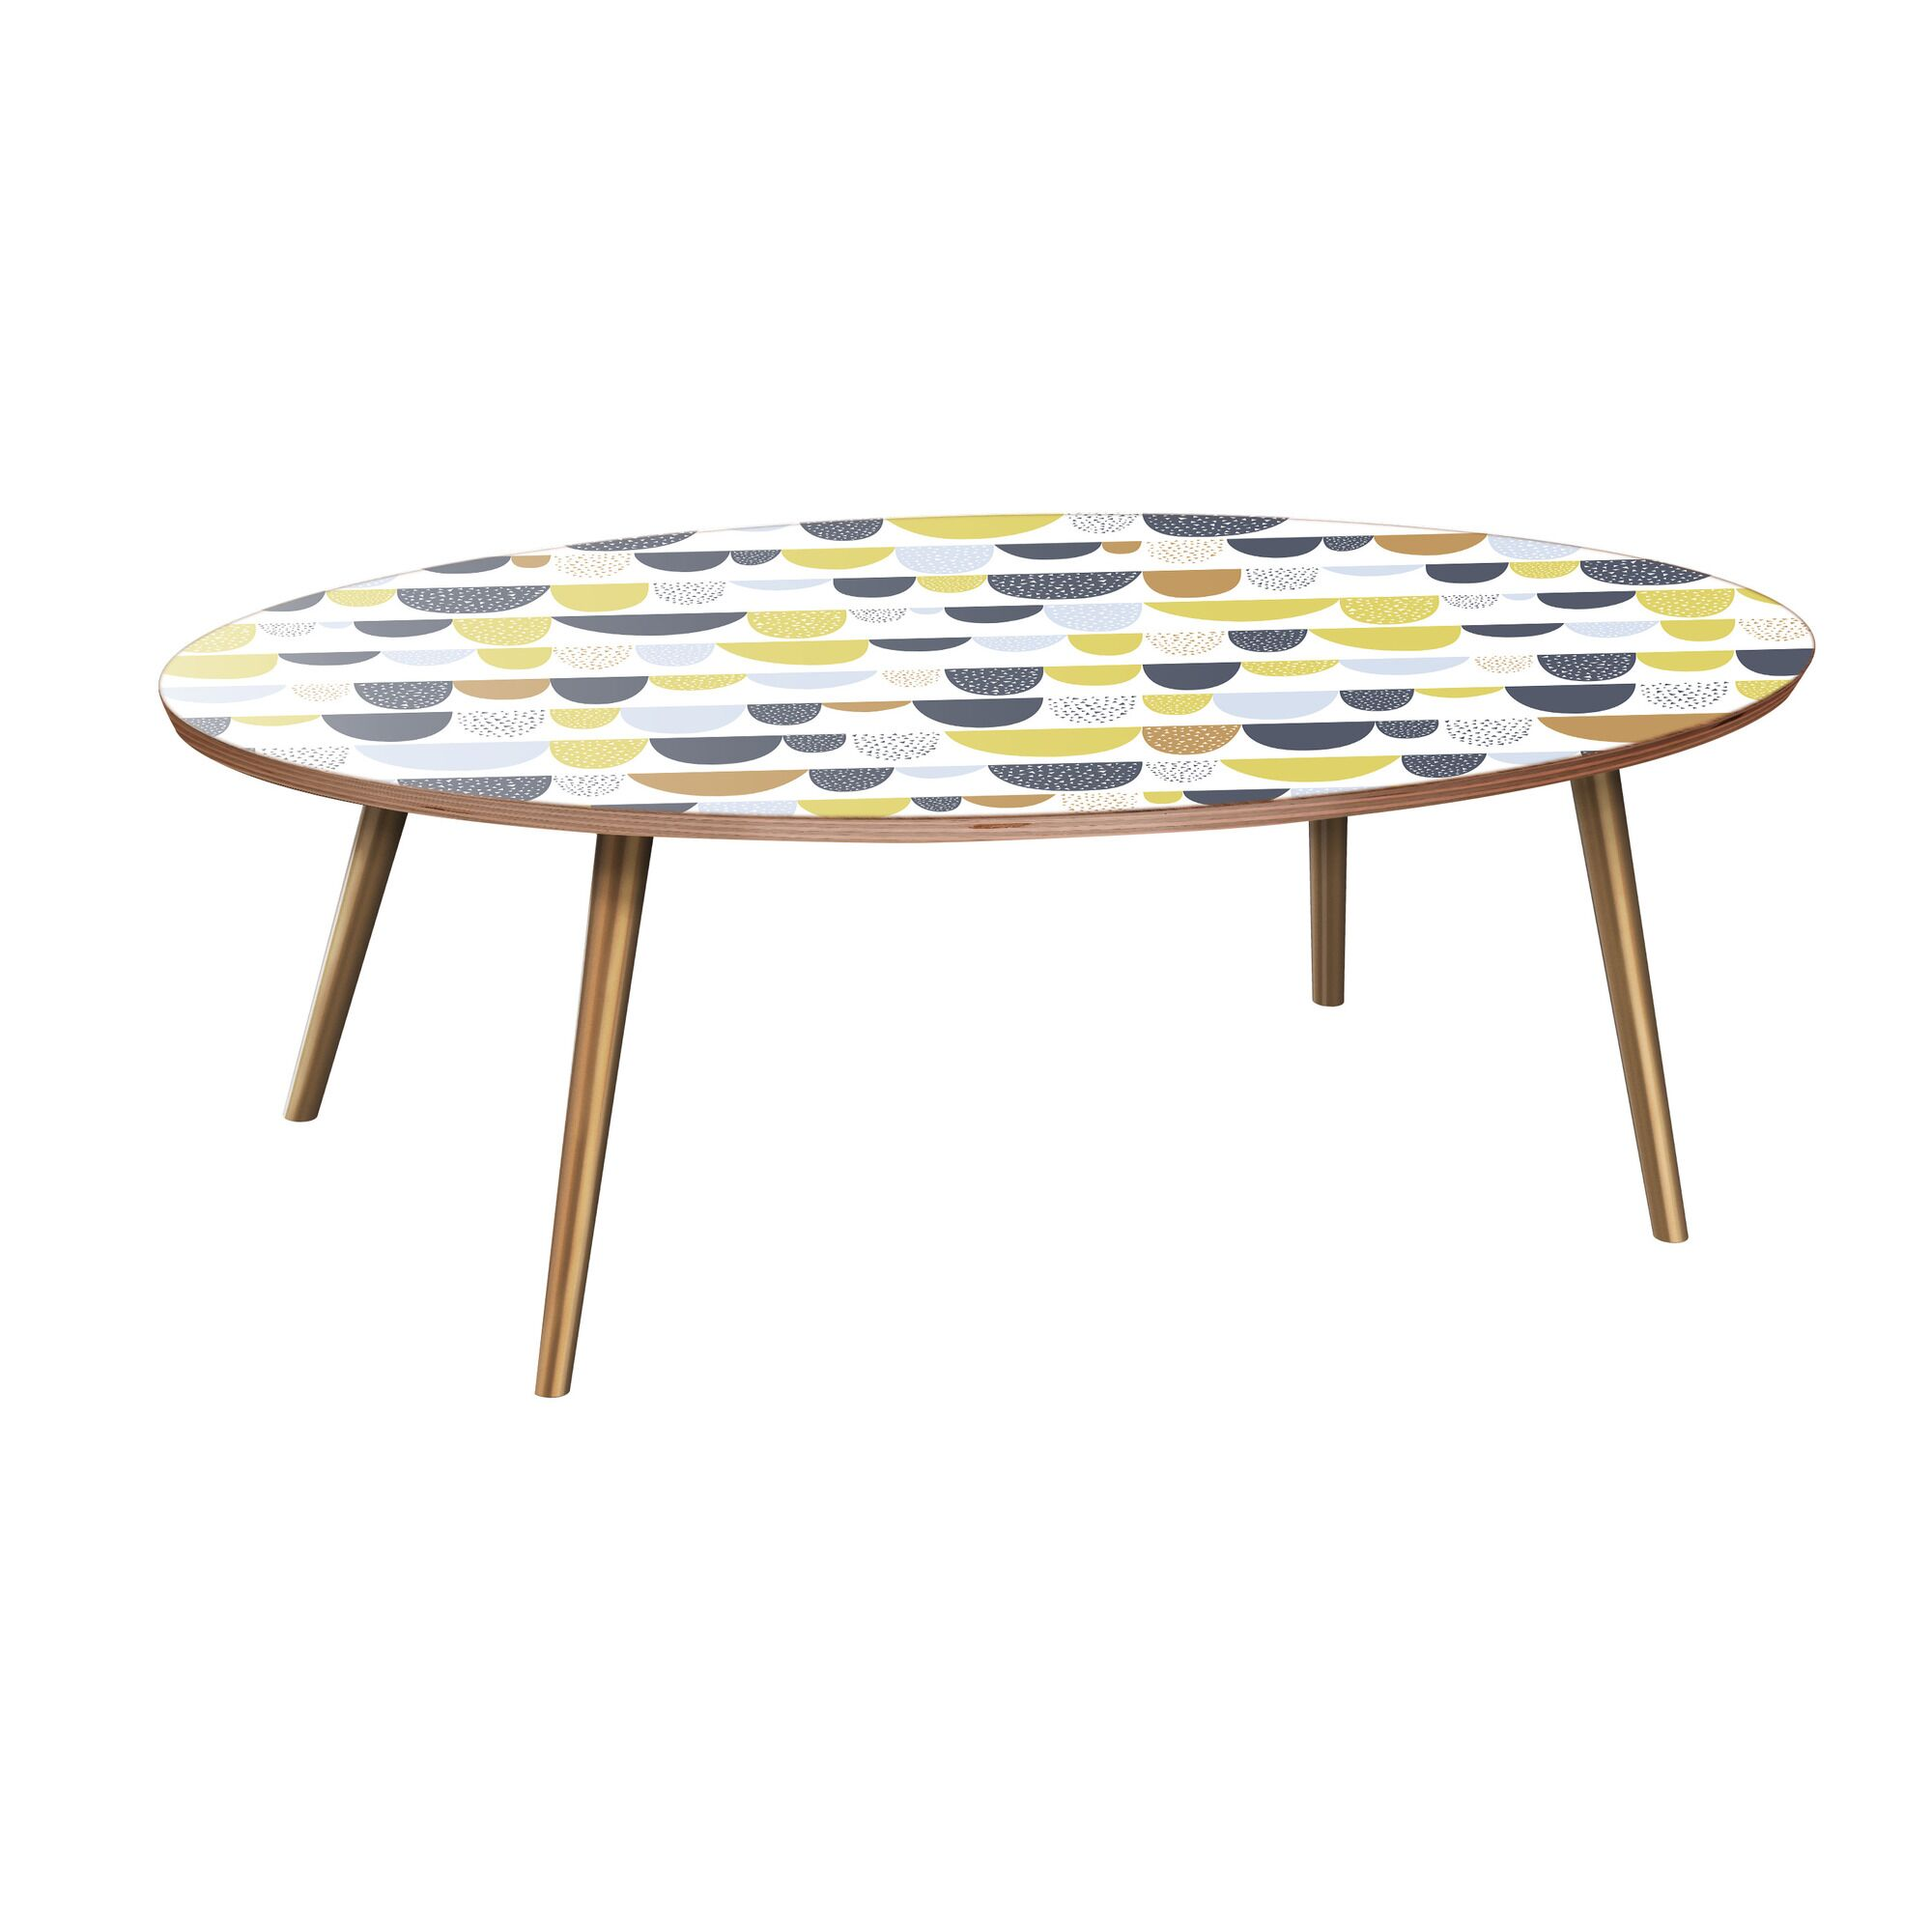 Jaliyiah Coffee Table Table Base Color: Brass, Table Top Color: Walnut